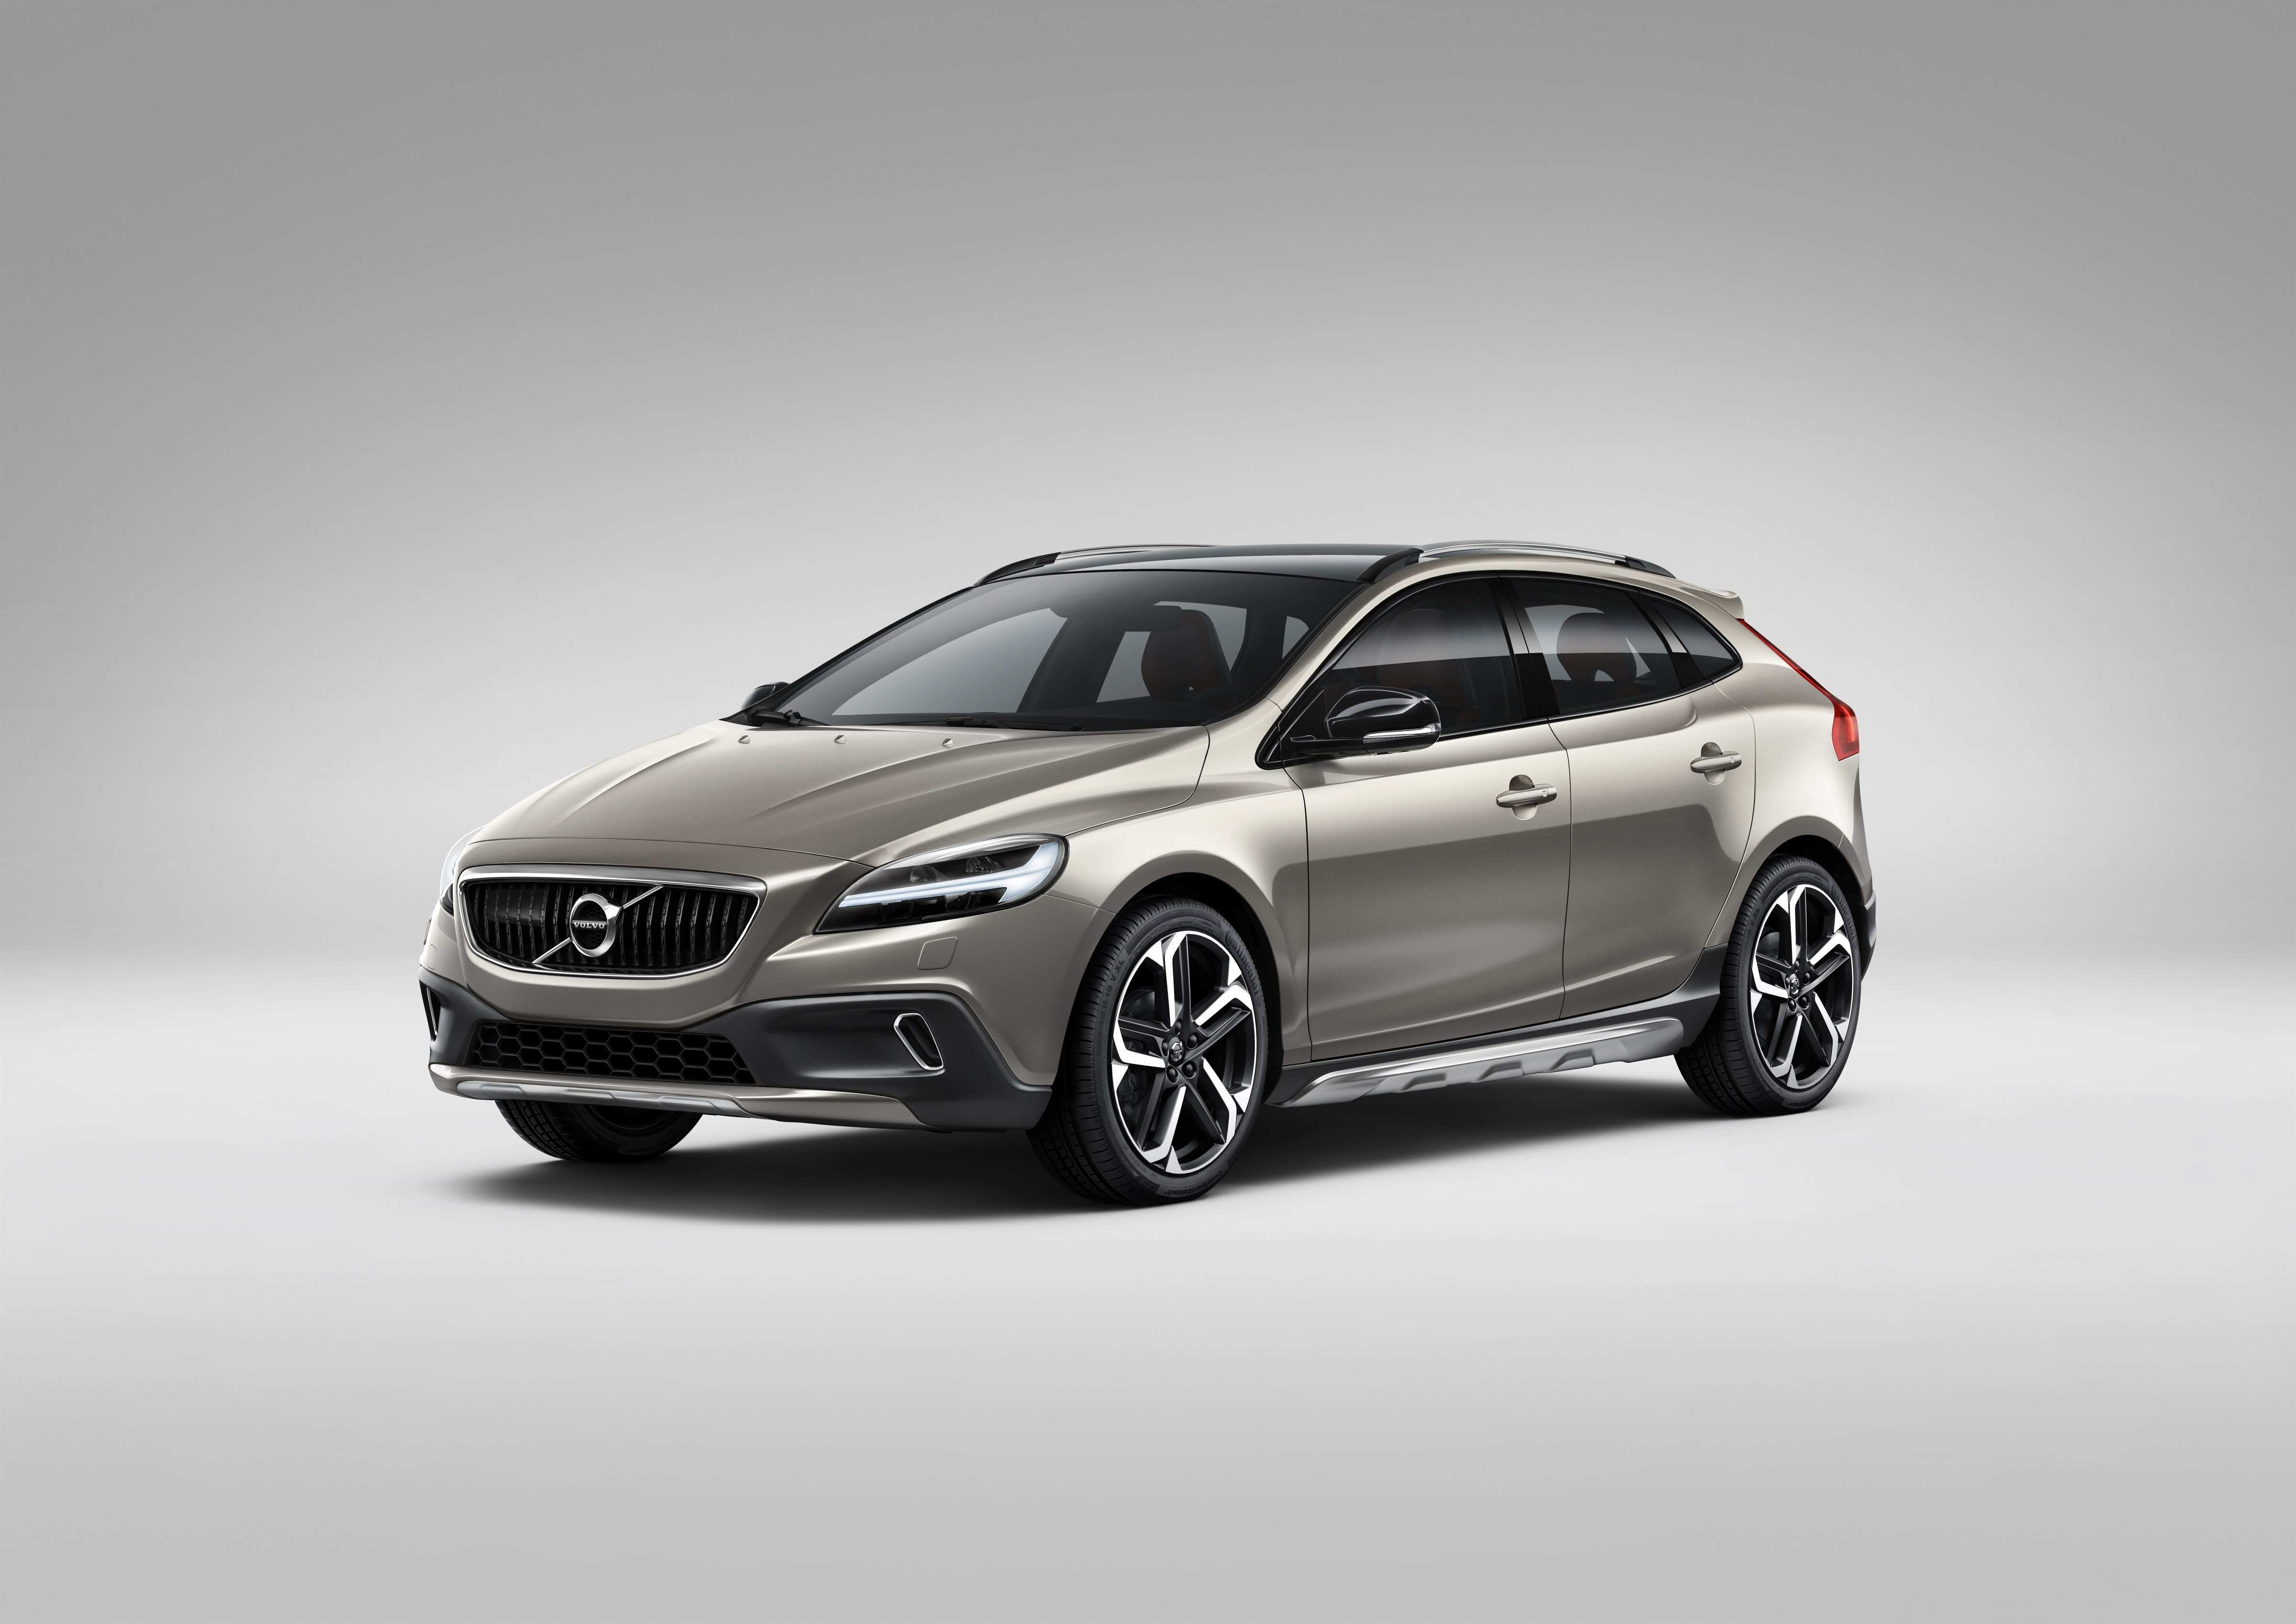 38 All New 2019 Volvo S40 Pictures